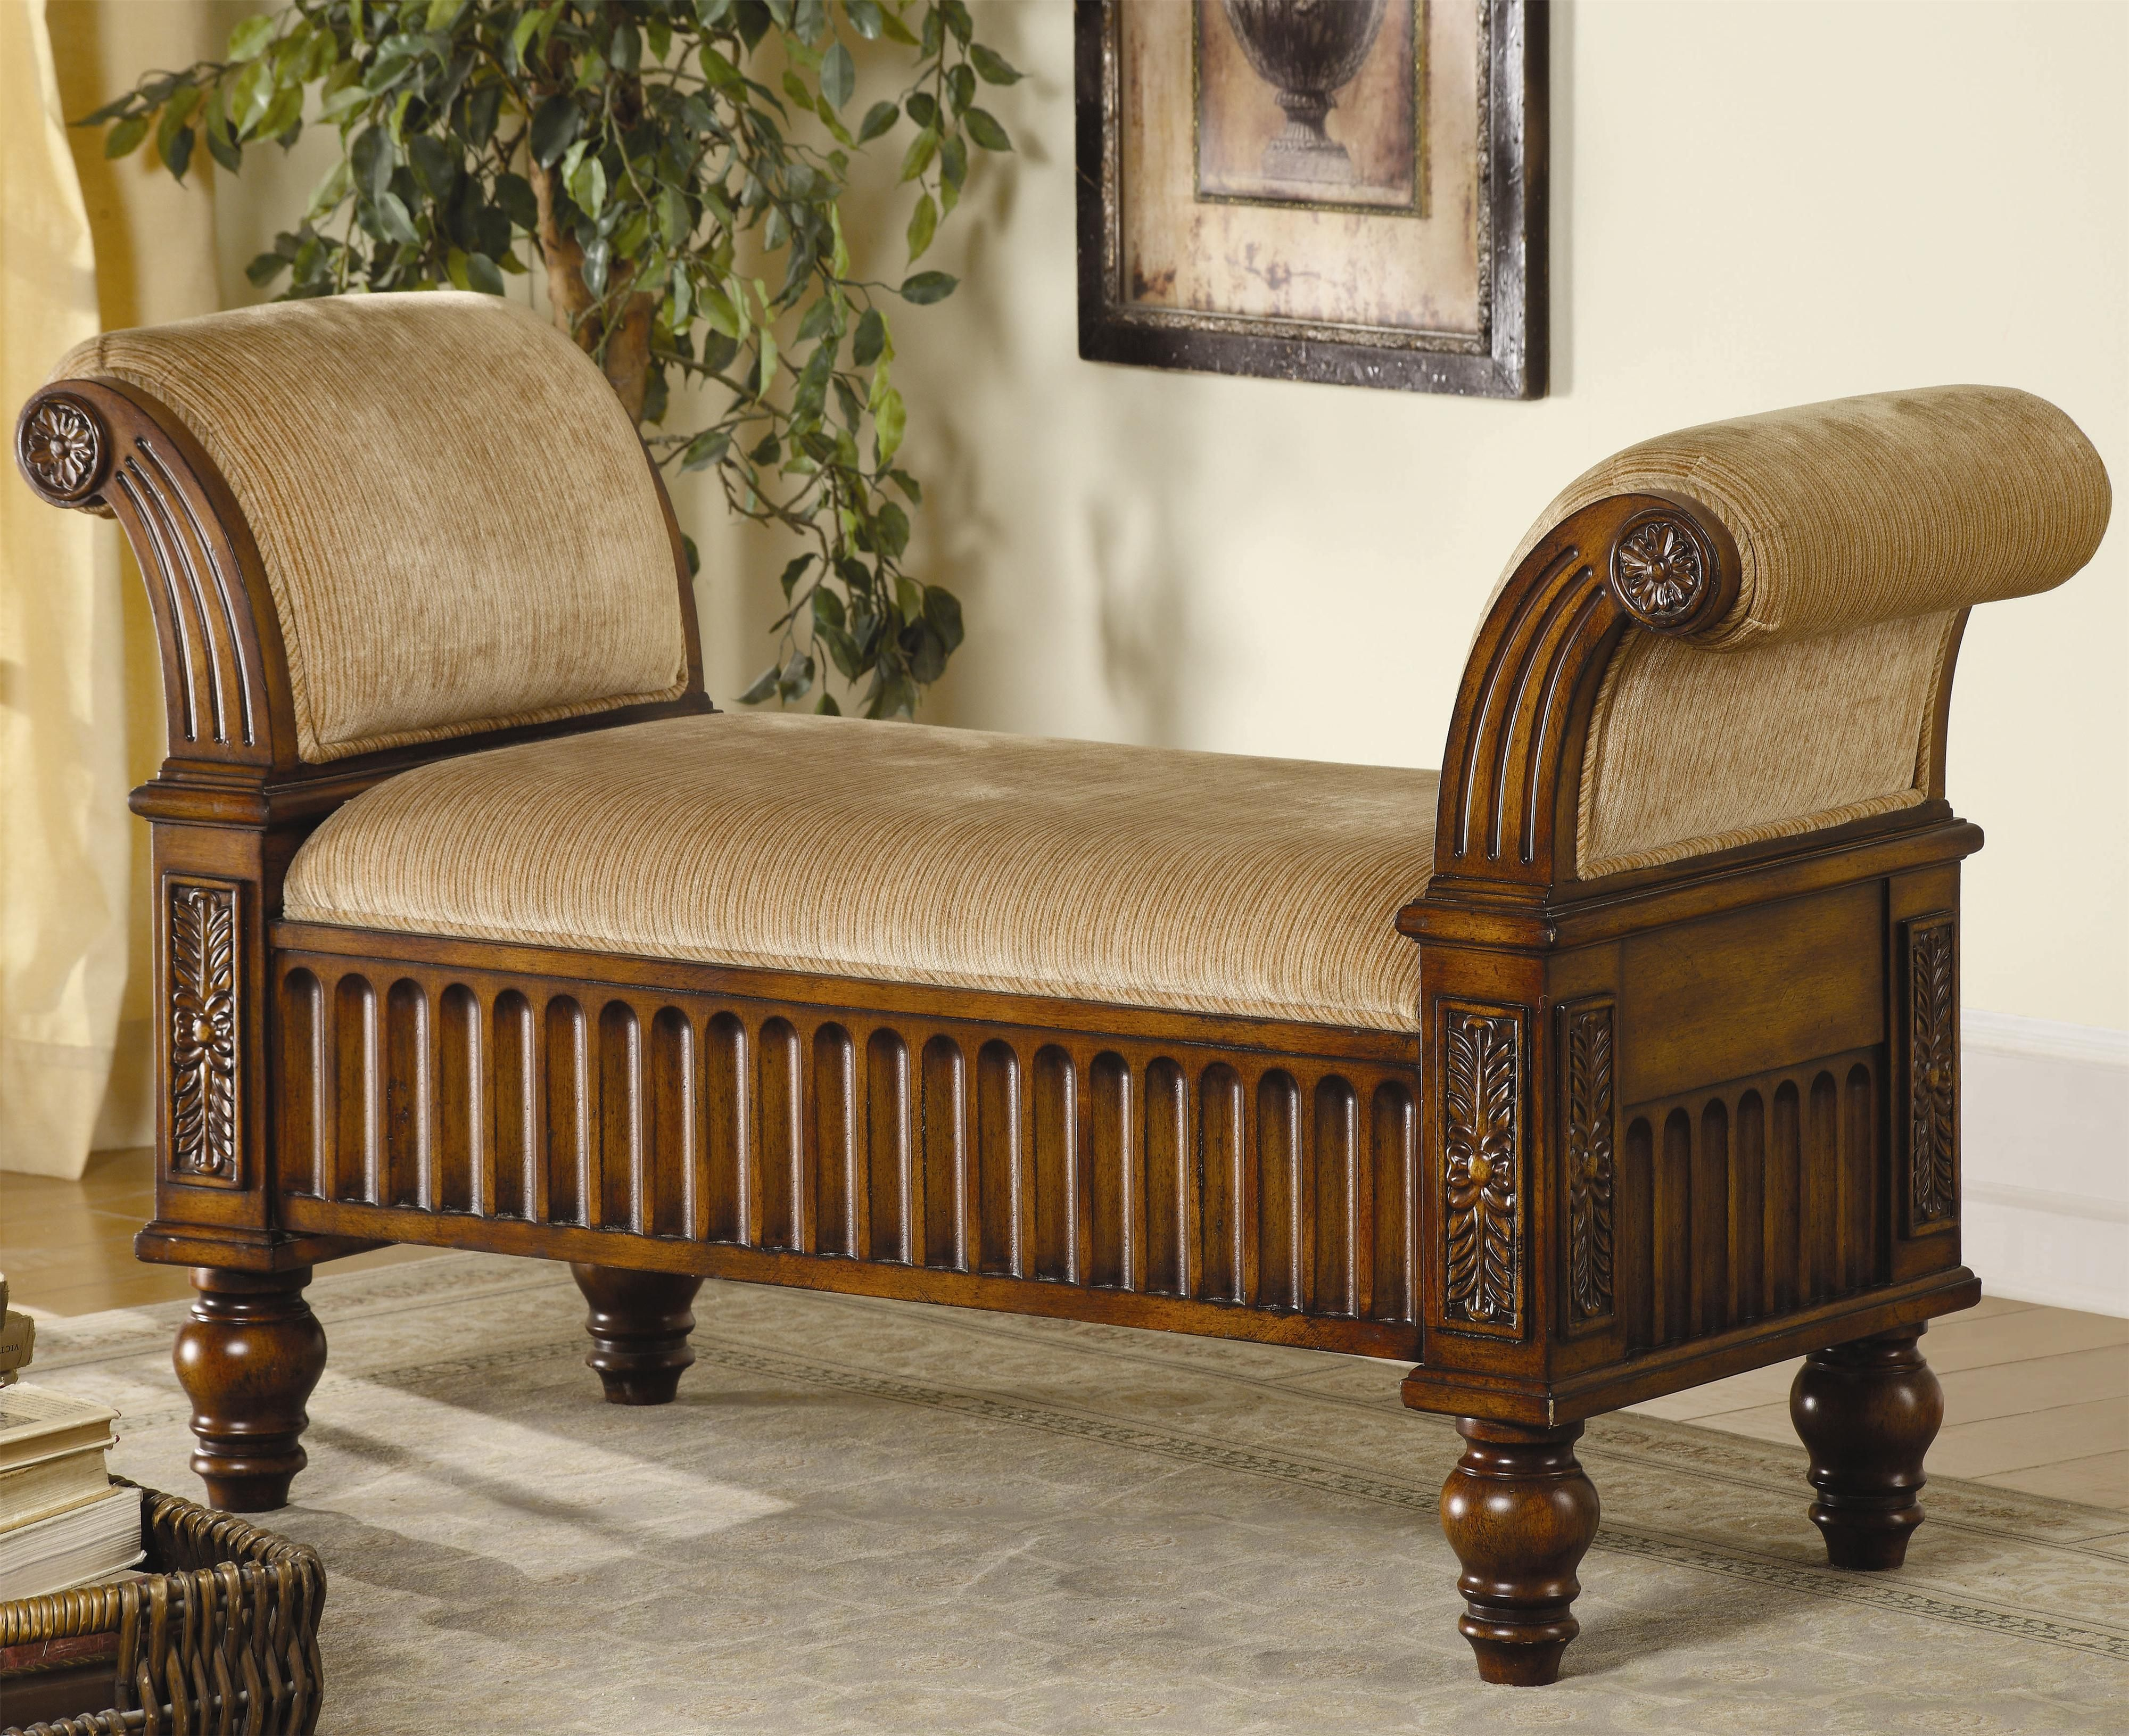 bedrooms toronto sale spanish for canada es with elegant decks room backs benches in livings living